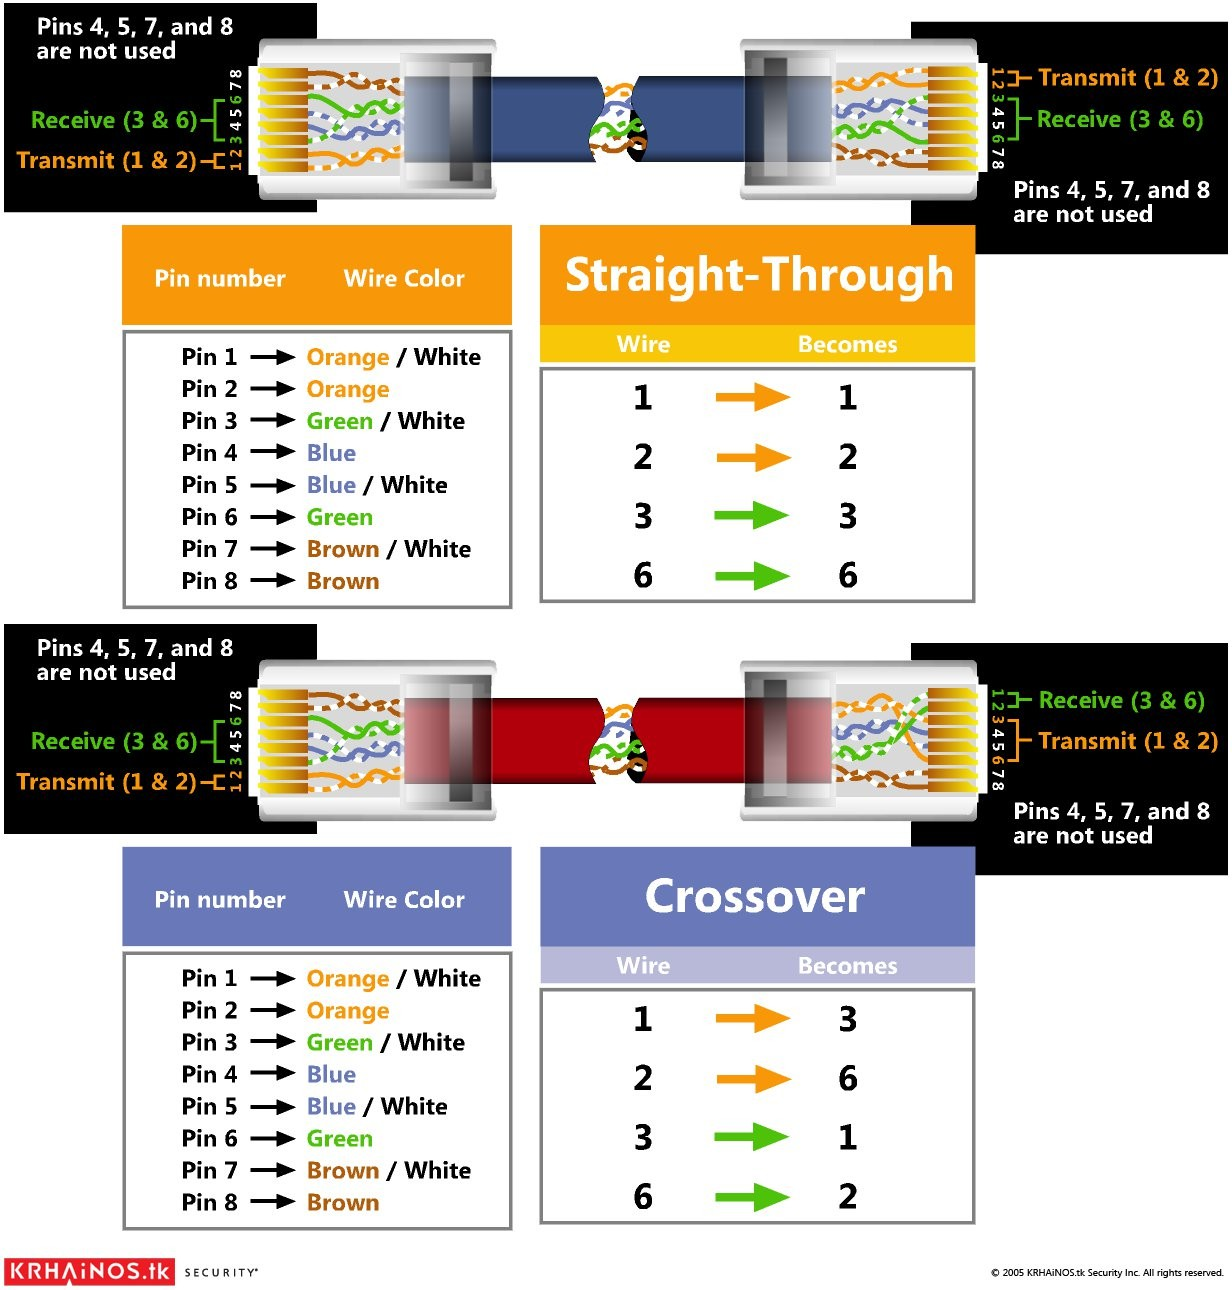 Catiring Diagram For Telephone Cat5 Phone Jack Line Cat 5 Wiring Wires Electrical Circuit Physical Connections